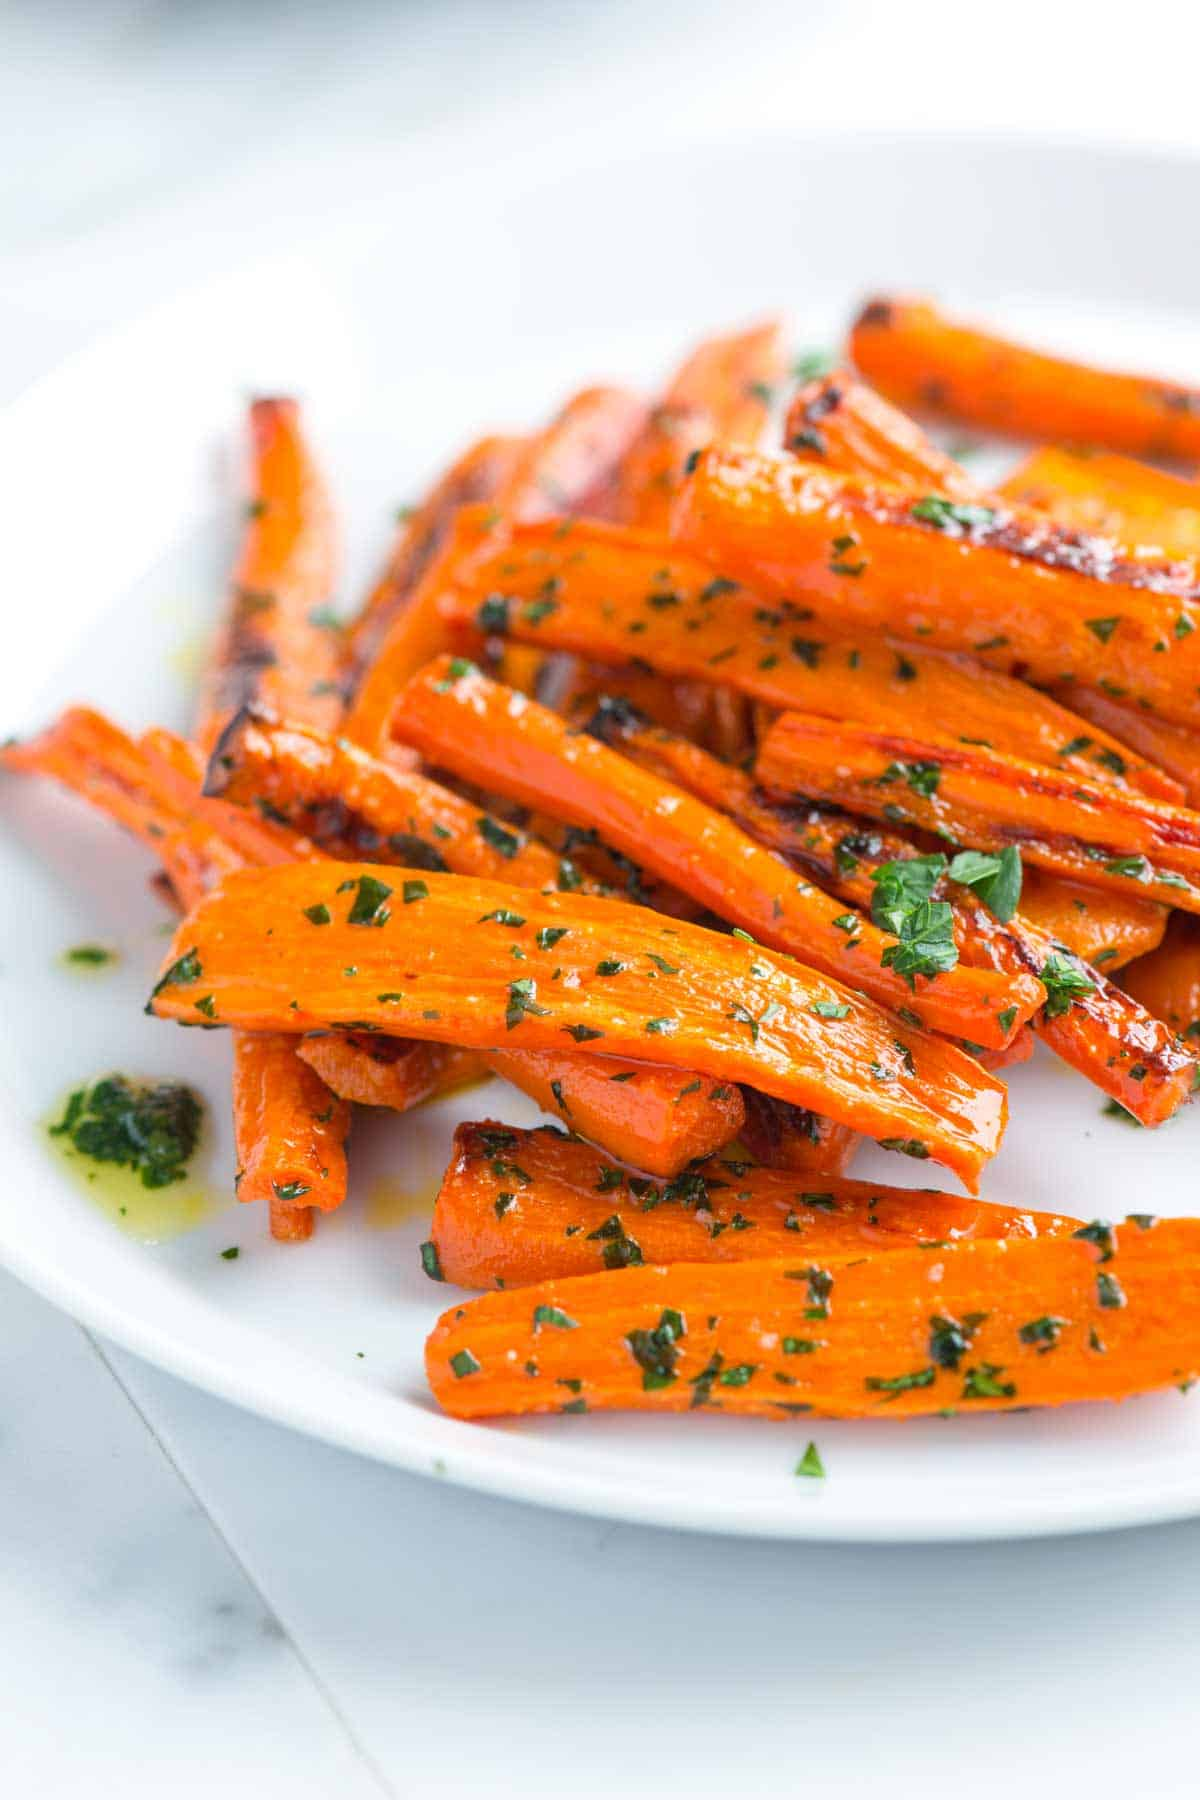 Top carrots dating site